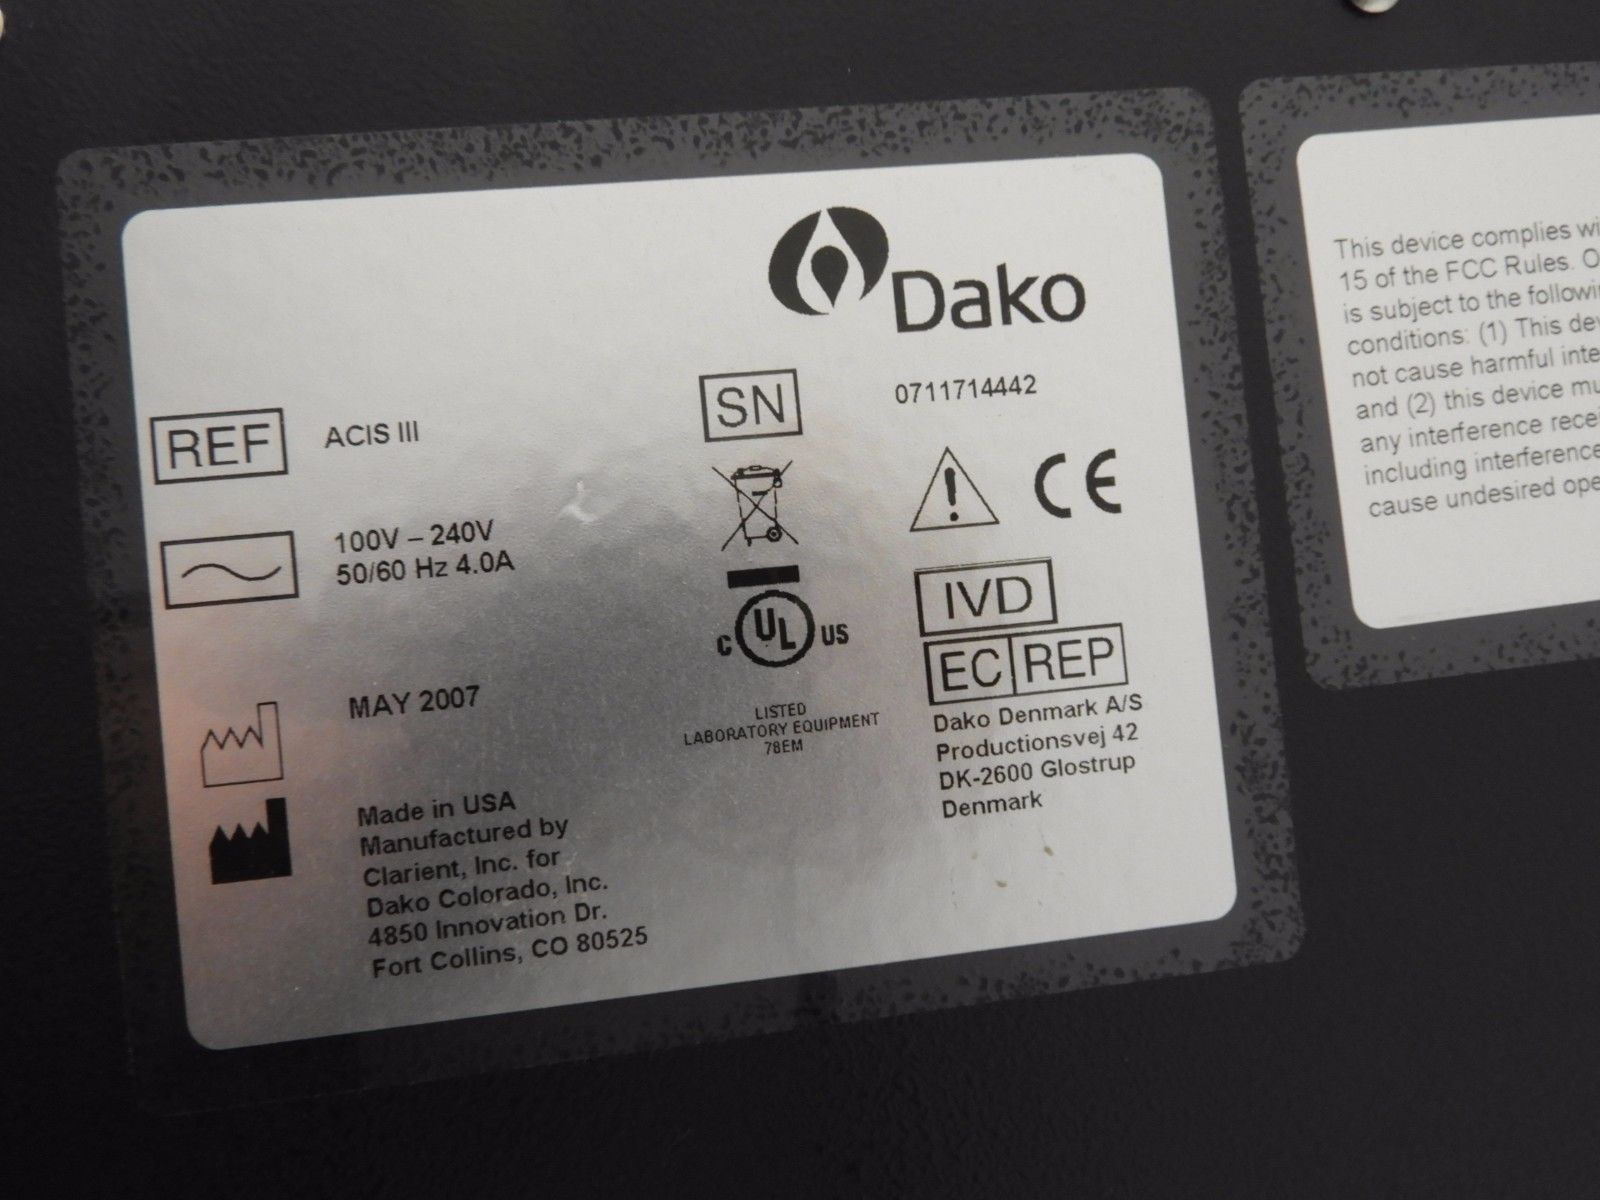 Dako ChromaVision ACIS-III Automated Cellular Imaging System label